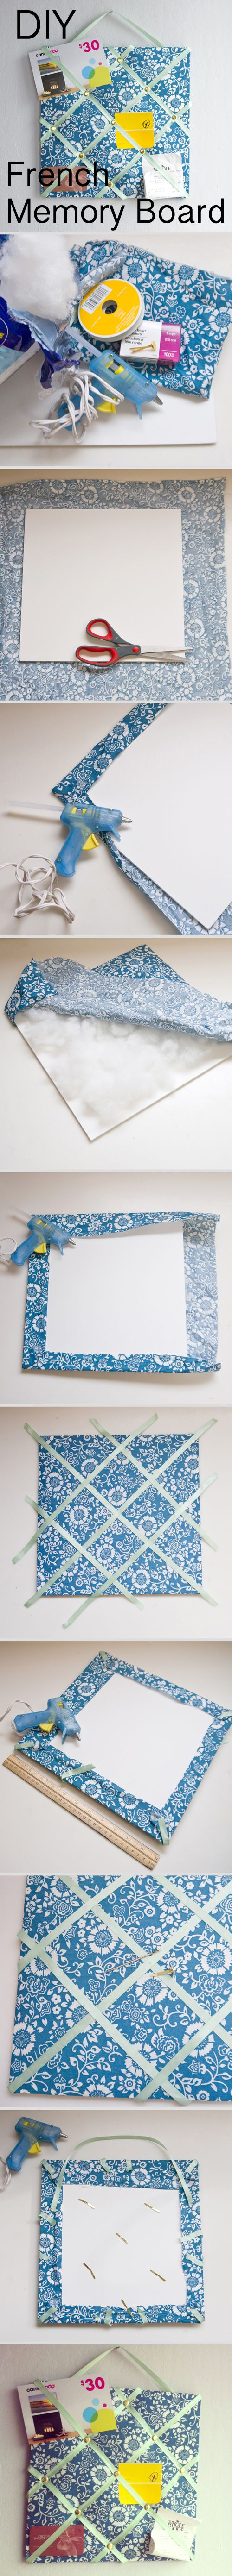 DIY French Memory Board Using Office Supplies.